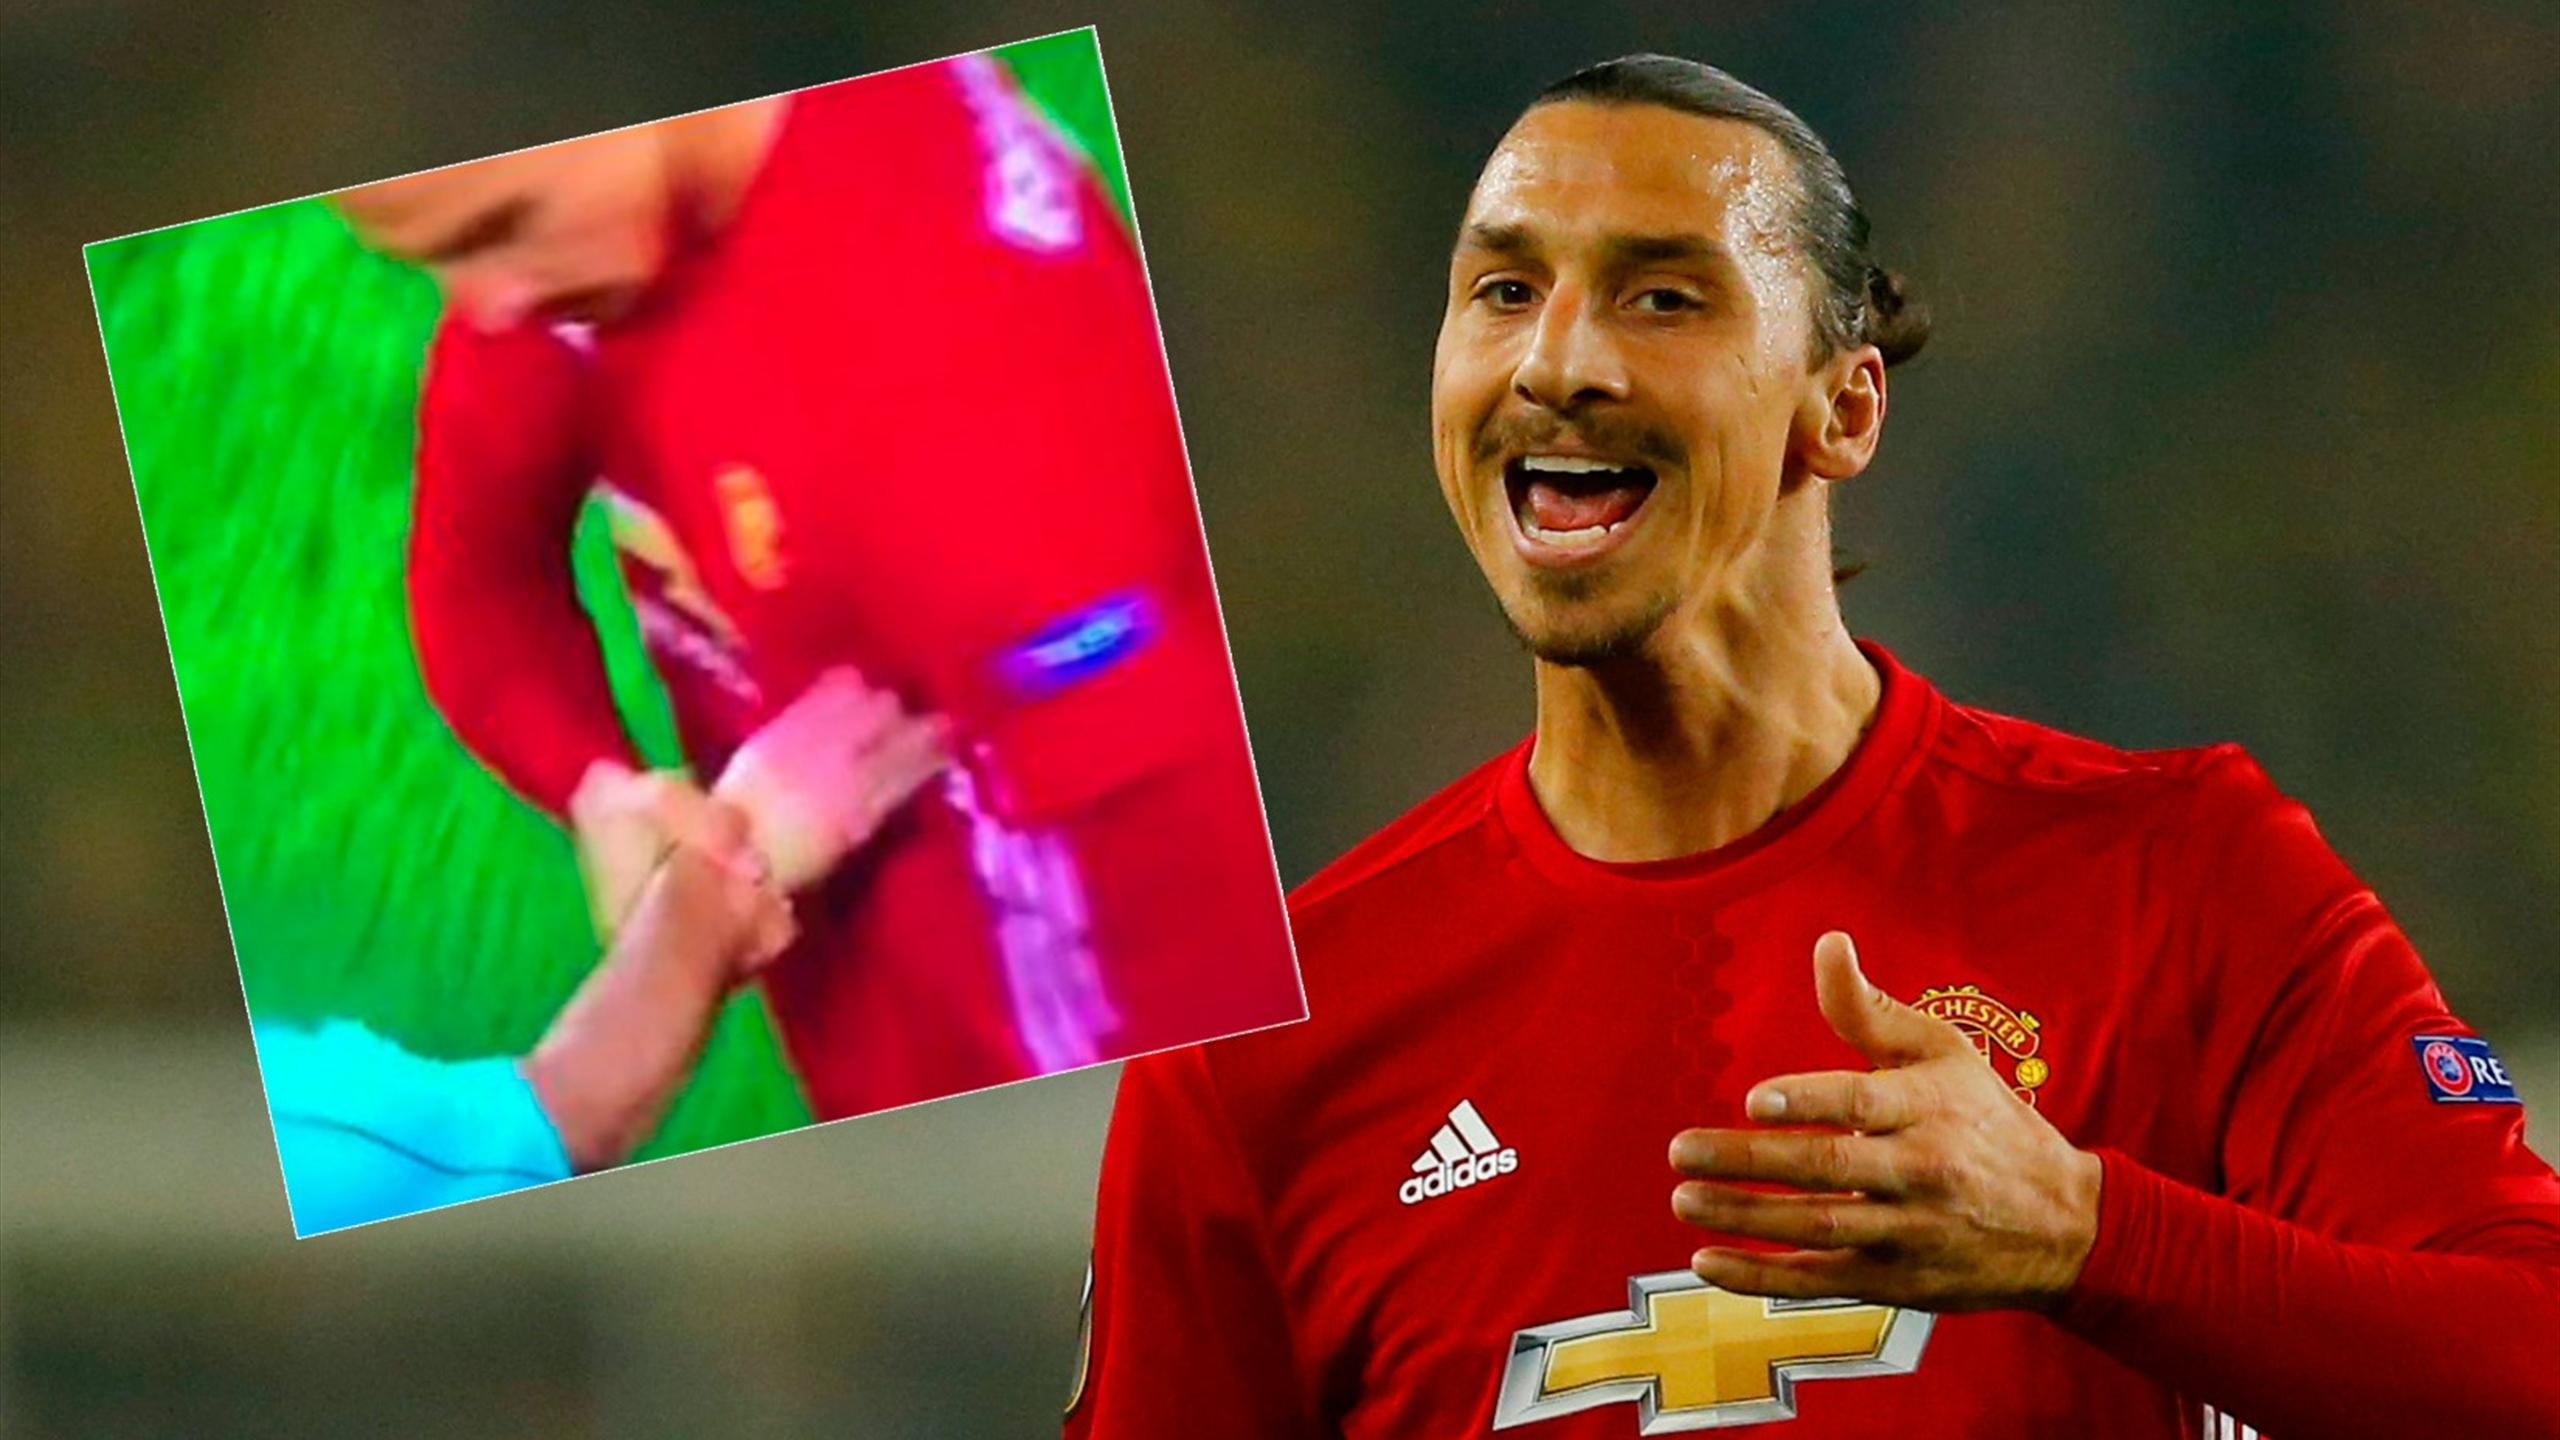 Referee dares to touch Zlatan Ibrahimovic – and his reaction is amazing…